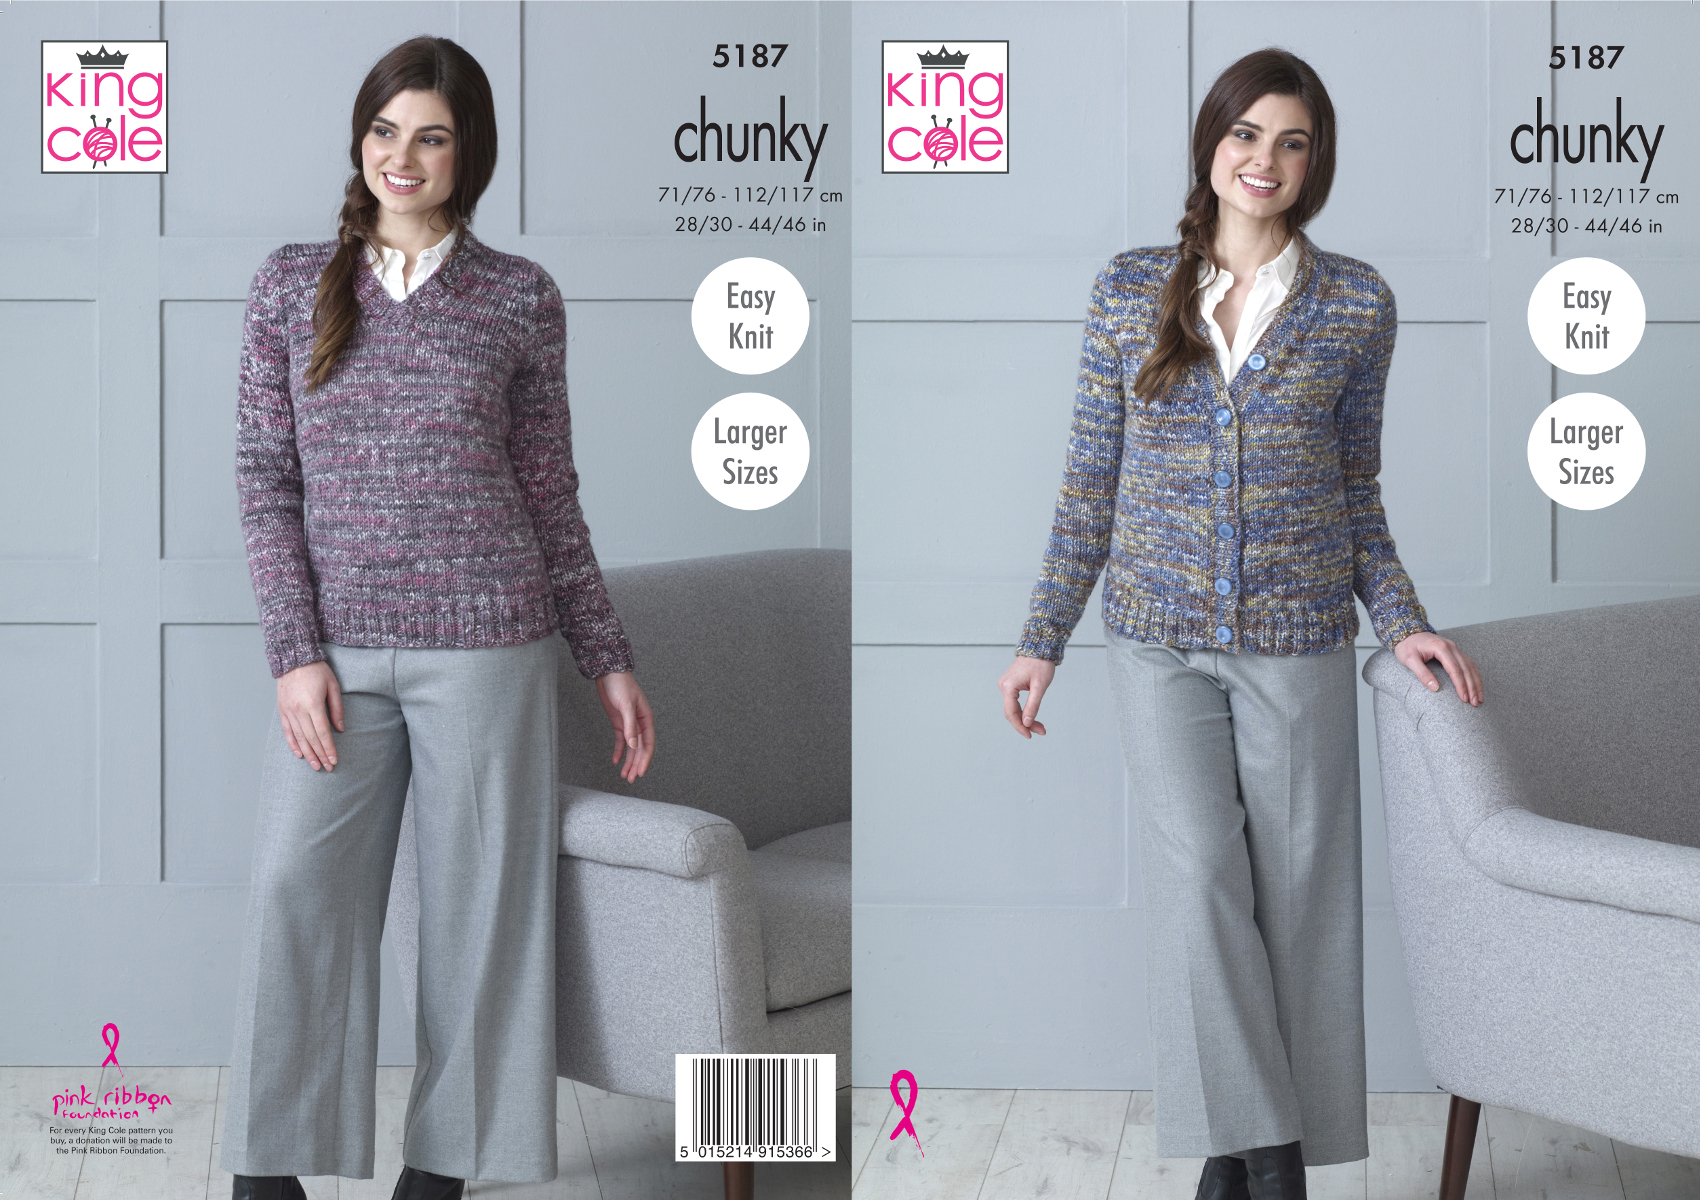 King Cole 5187 Knitting Pattern Womens Cardigan and Sweater in Shadow Chunky